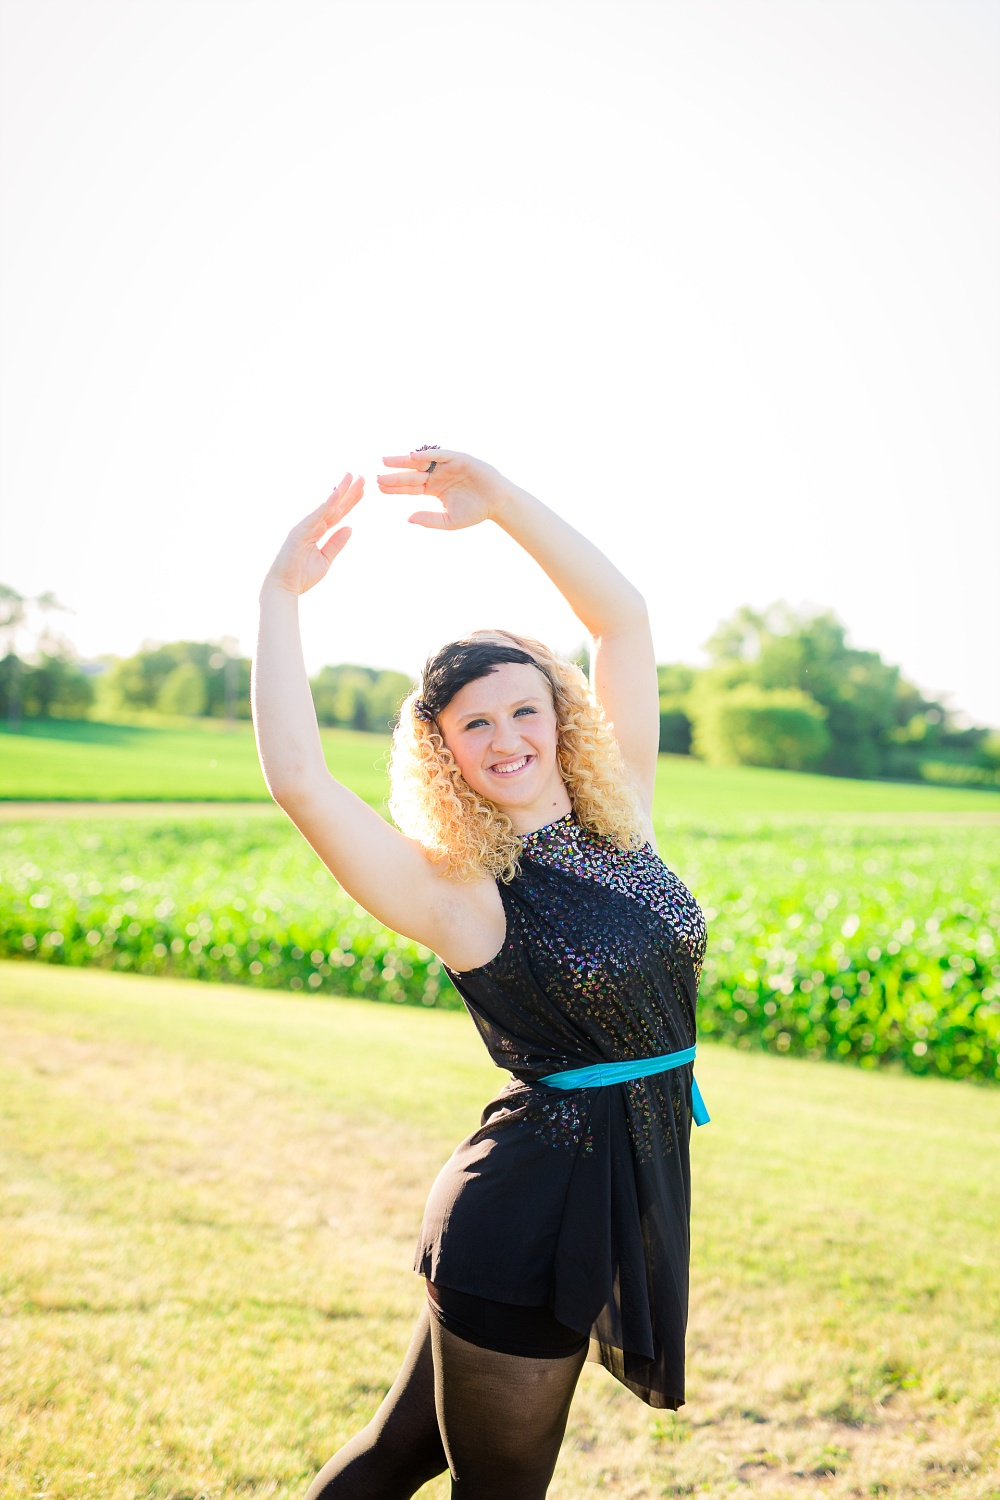 Outdoor, Country Styled High School Senior Pictures by Amber Langerud Photography | Audubon, MN | HS senior dancer ballet pose